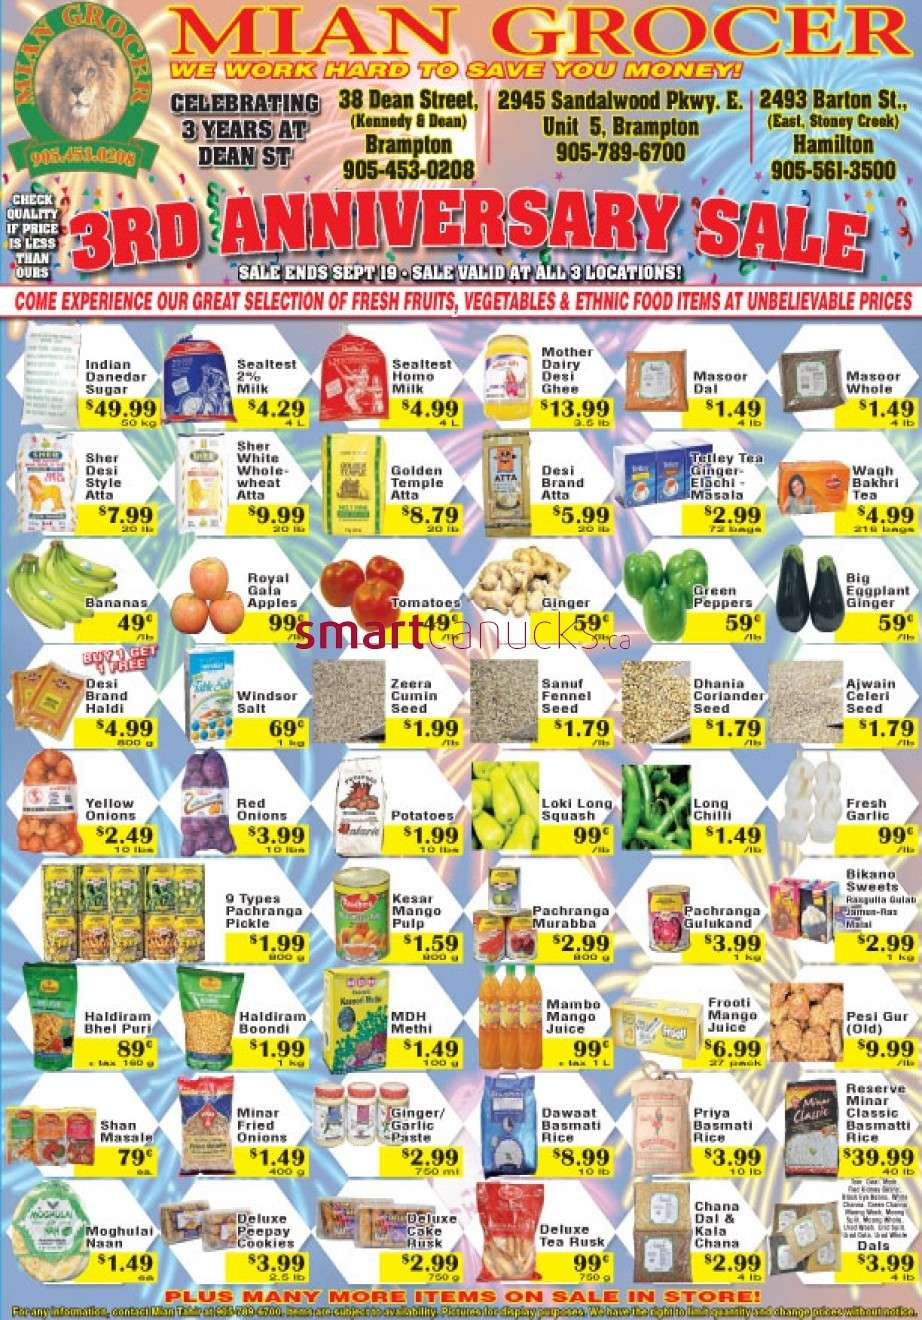 Mian Grocer Flyer Sep 13 To 19